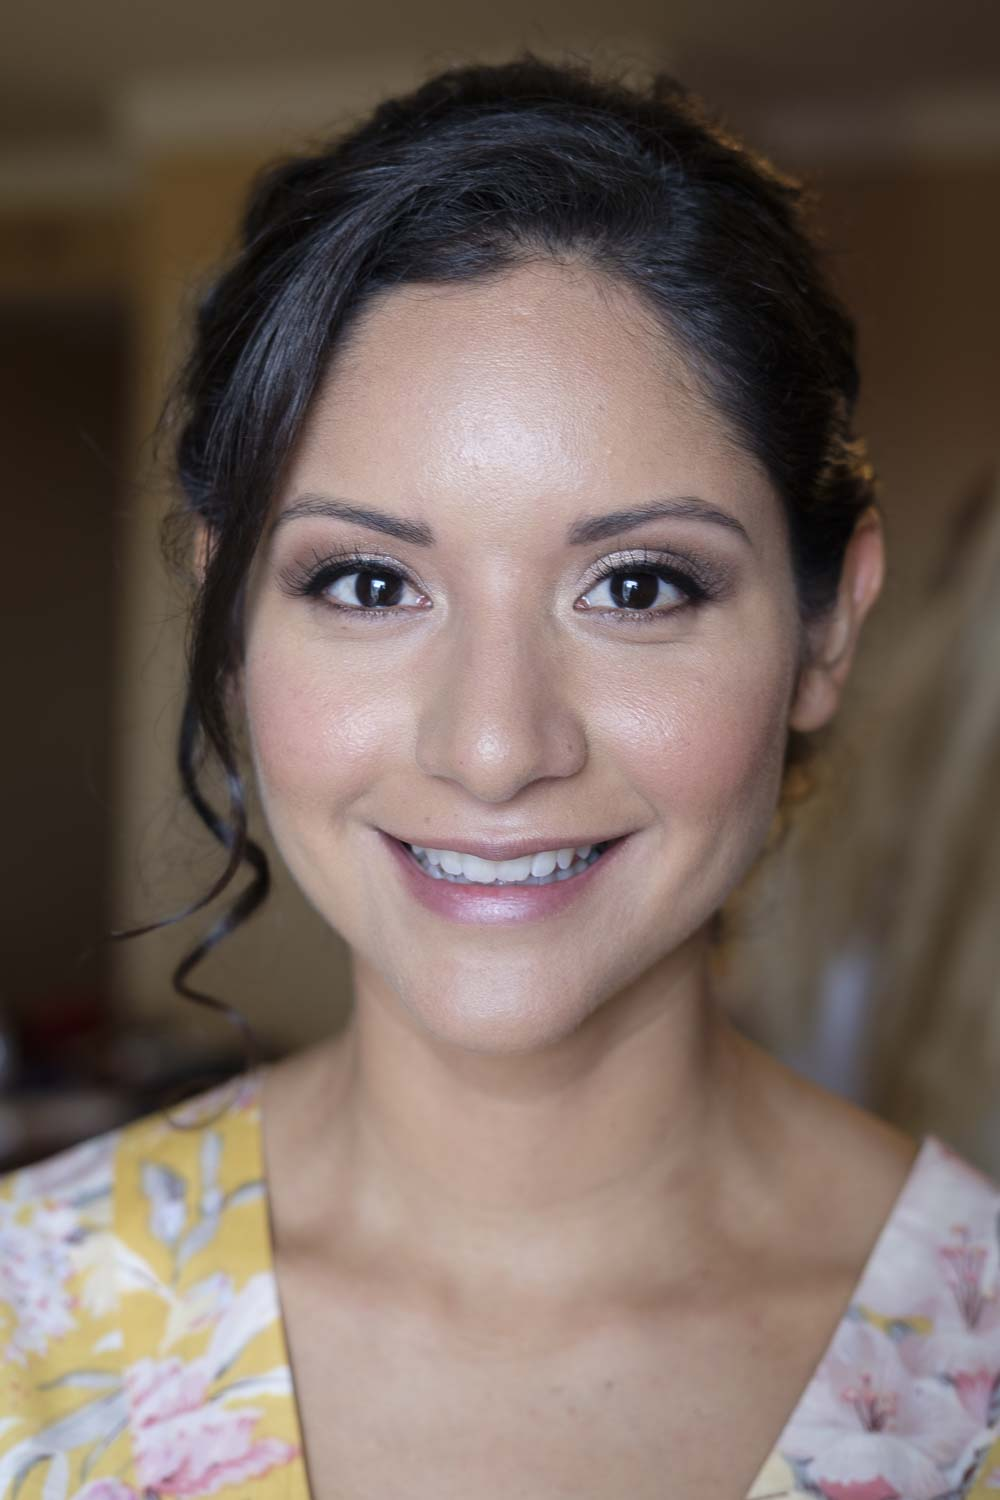 beauty affair bridal makeup and hairstyle los angeles_1.JPG